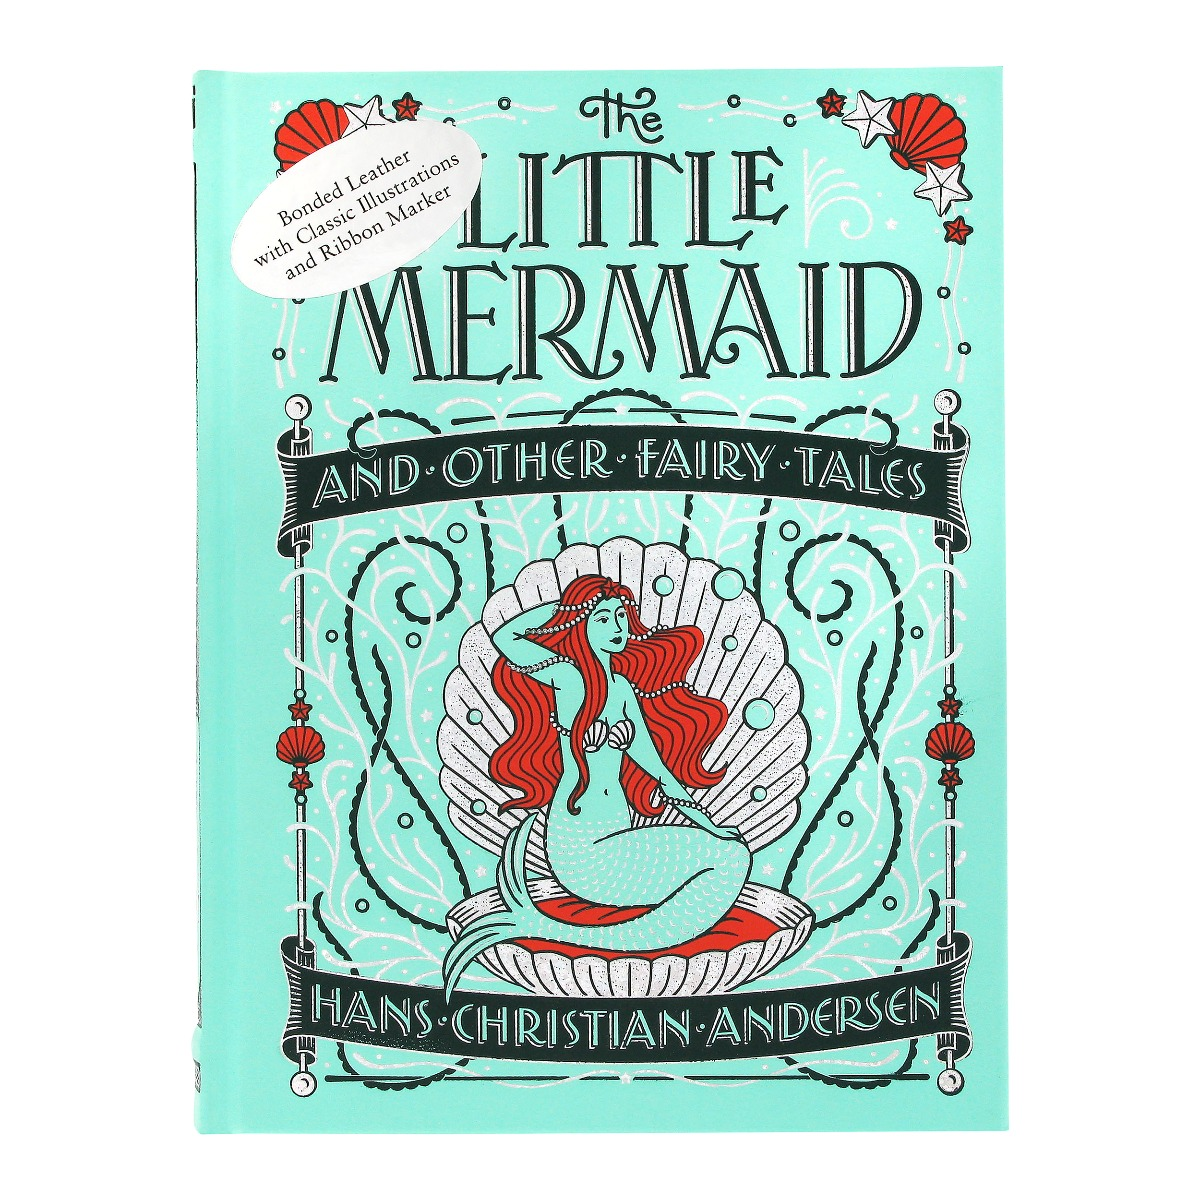 The Little Mermaid and Other Fairy Tales by Hans Christian Andersen